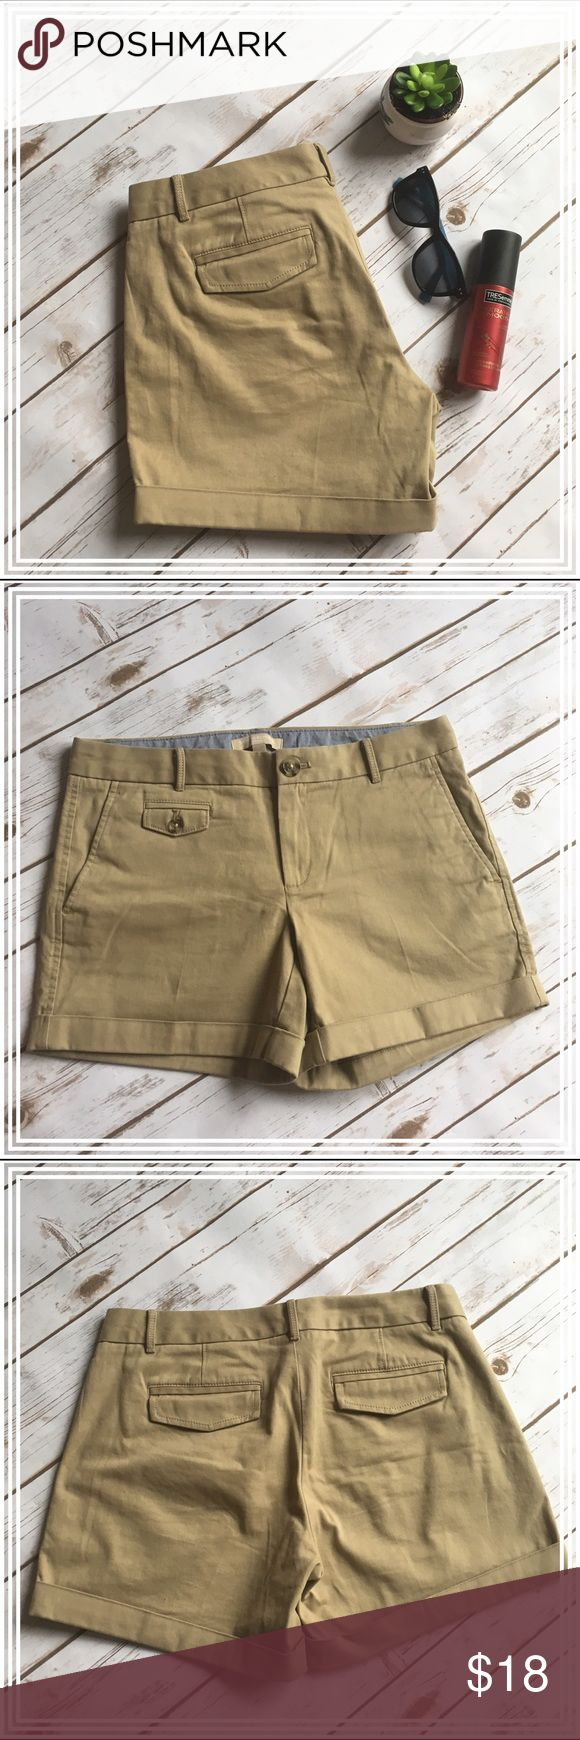 "Banana Republic beige cuffed shorts These shorts are in good condition; they have a cuffed hem, pockets in the front and flap pockets in the back. Measurements are: waist 15.5"" and inseam 5"". Banana Republic Shorts"